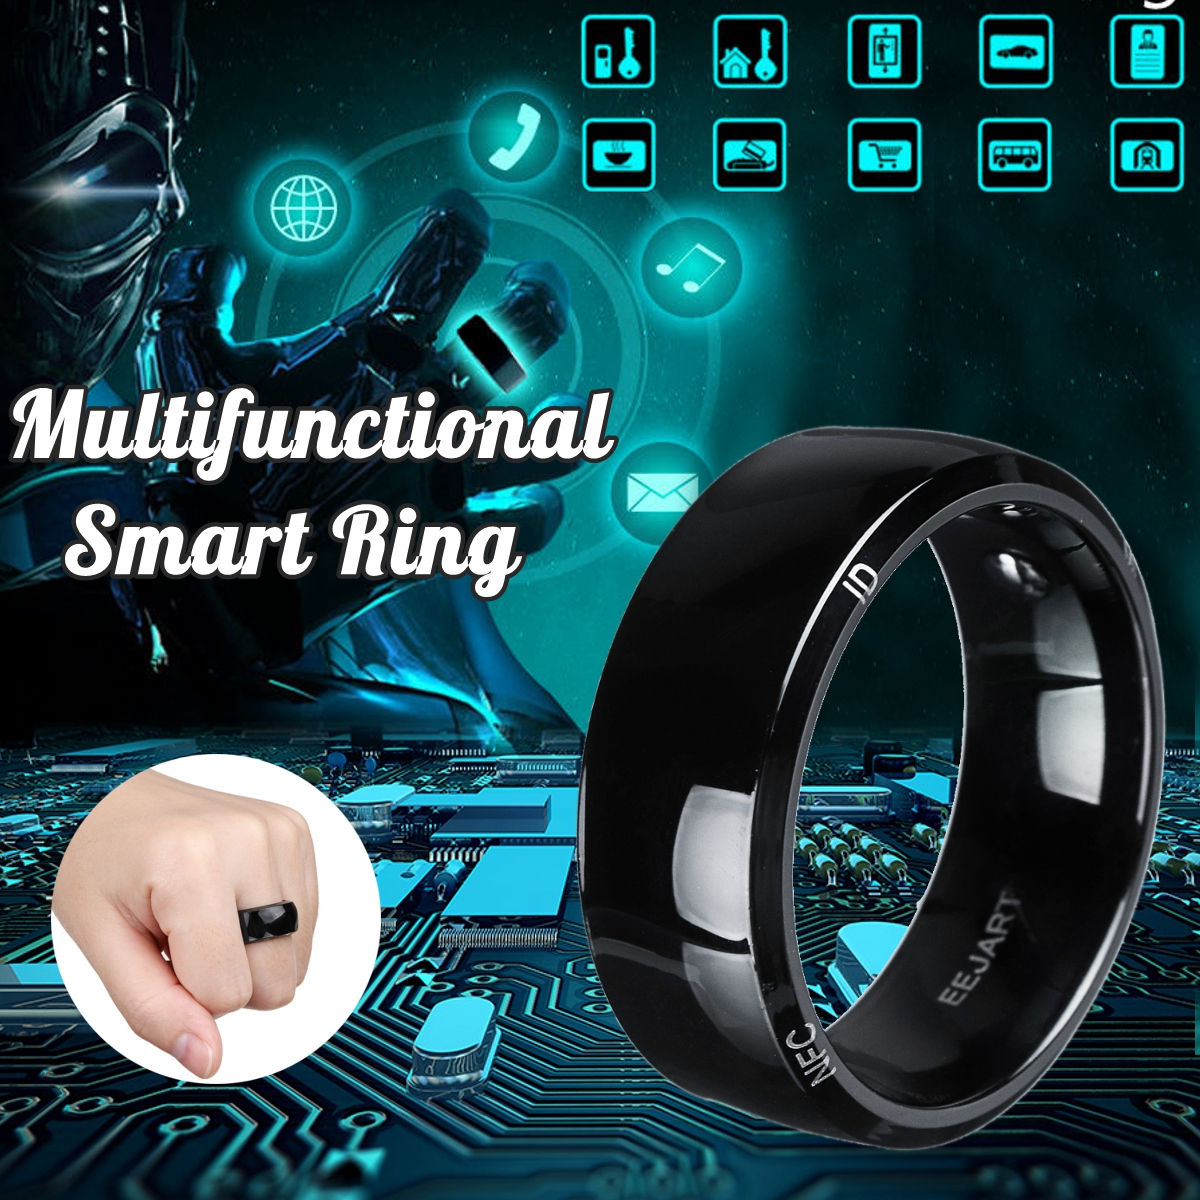 Waterproof Unlock Health Protection Smart Ring Wear New technology Magic Finger NFC Ring For Android Windows NFC Mobile Phone цена